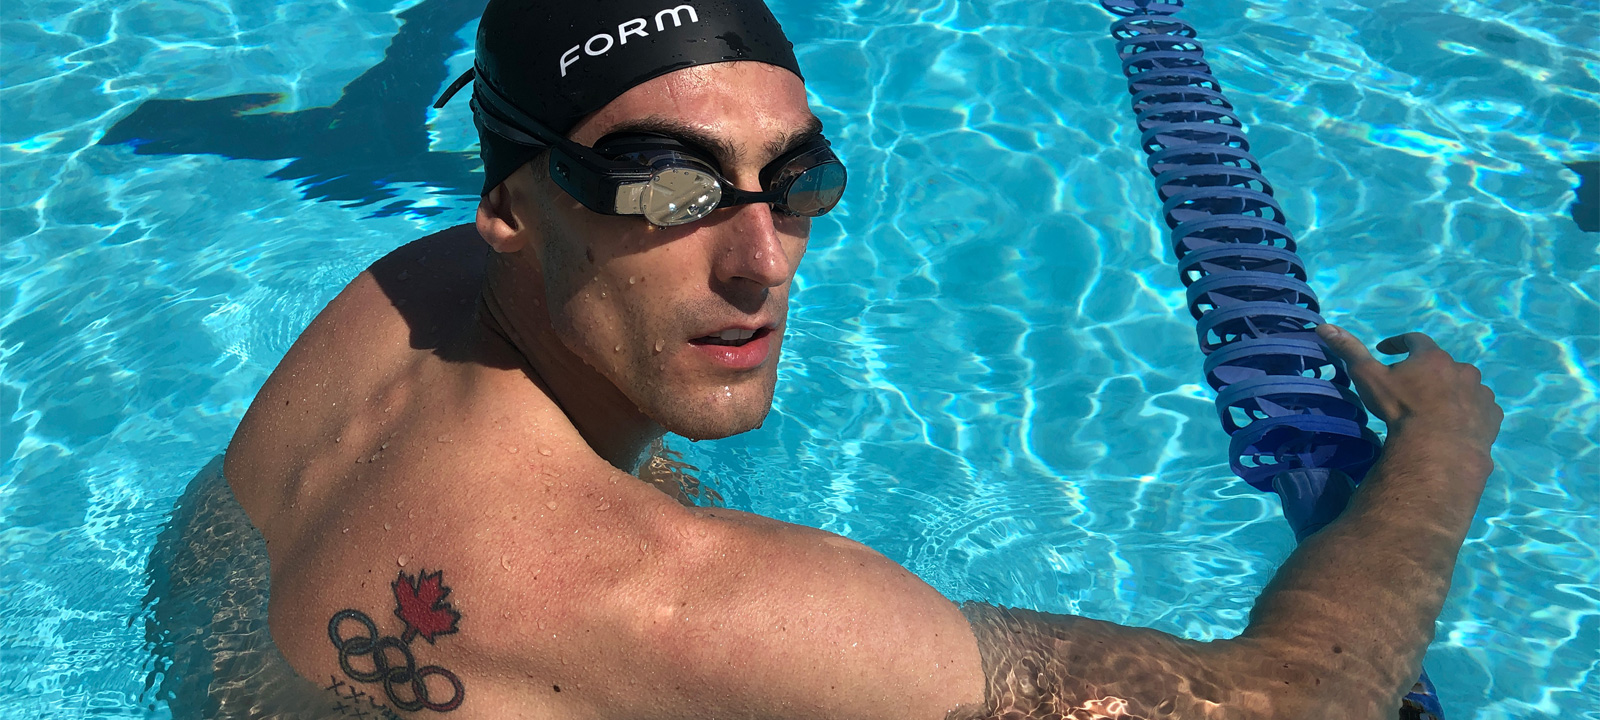 3 Tips From an Olympic Swimmer to Help You Improve This Year